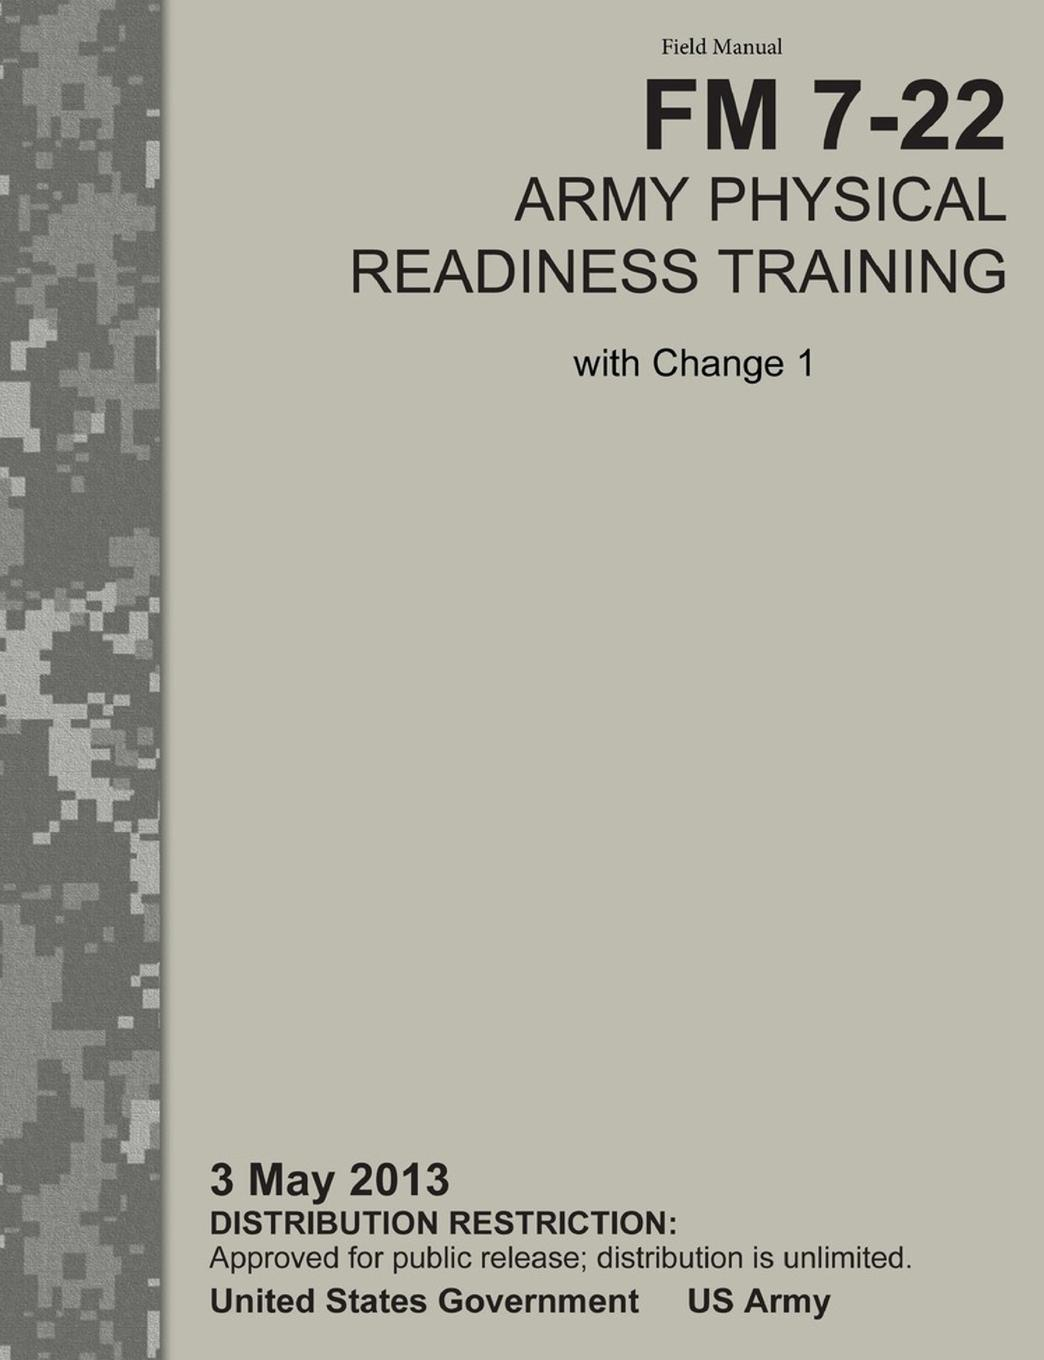 U.S. Army Physical Fitness School, Training Doctrine and Command Army Physical Readiness Training. The Official U.S. Army Field Manual FM 7-22, C1 (3 May 2013) leadership center for army and us army the u s army leadership field manual fm 22 100